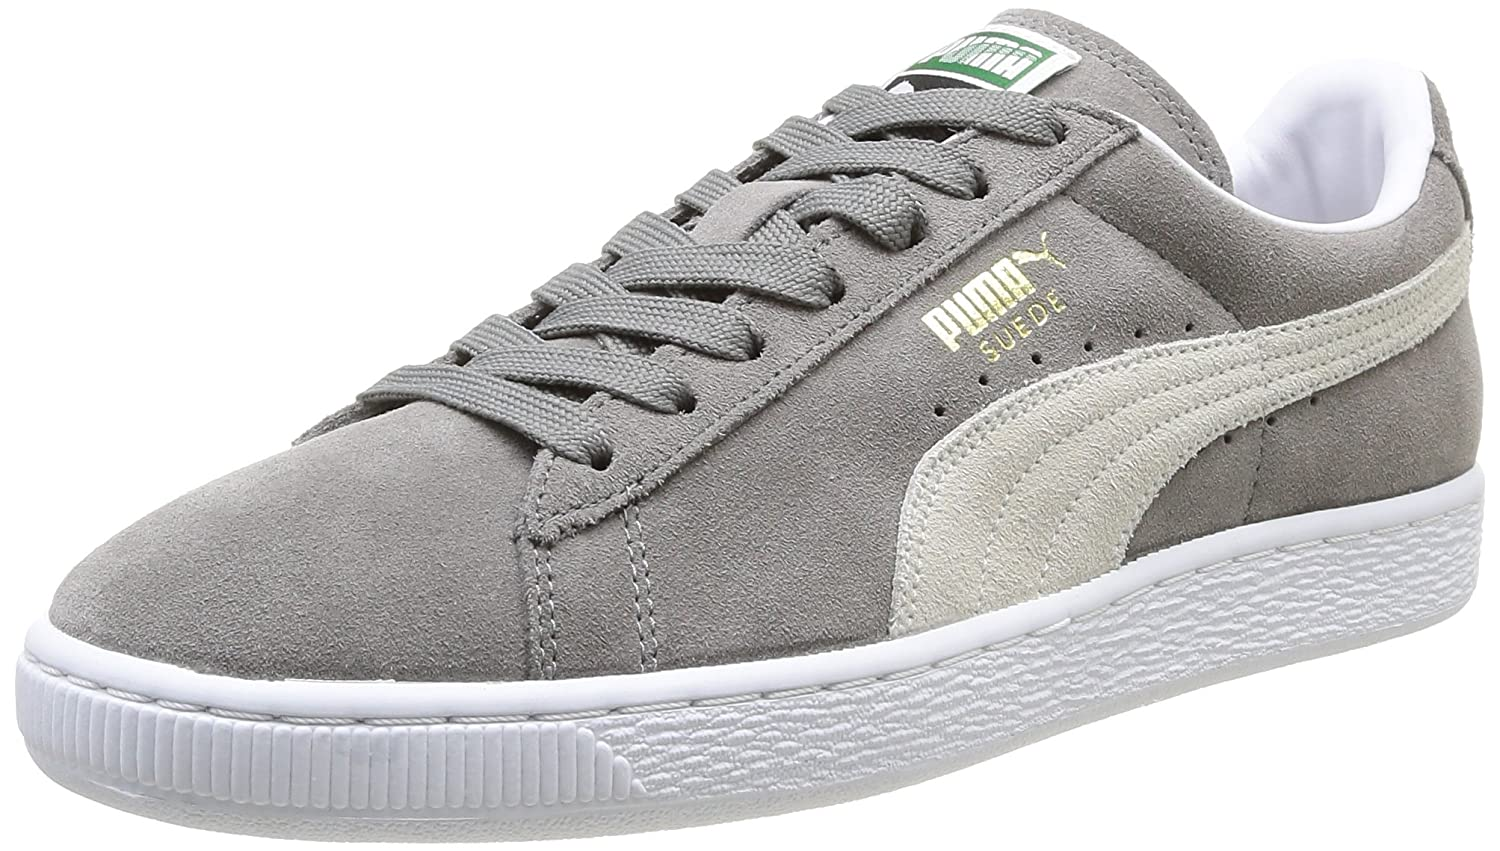 Puma Suede Classic+, Herren High-Top Sneaker  36.5 EU|Grau (Steeple Gray-white)